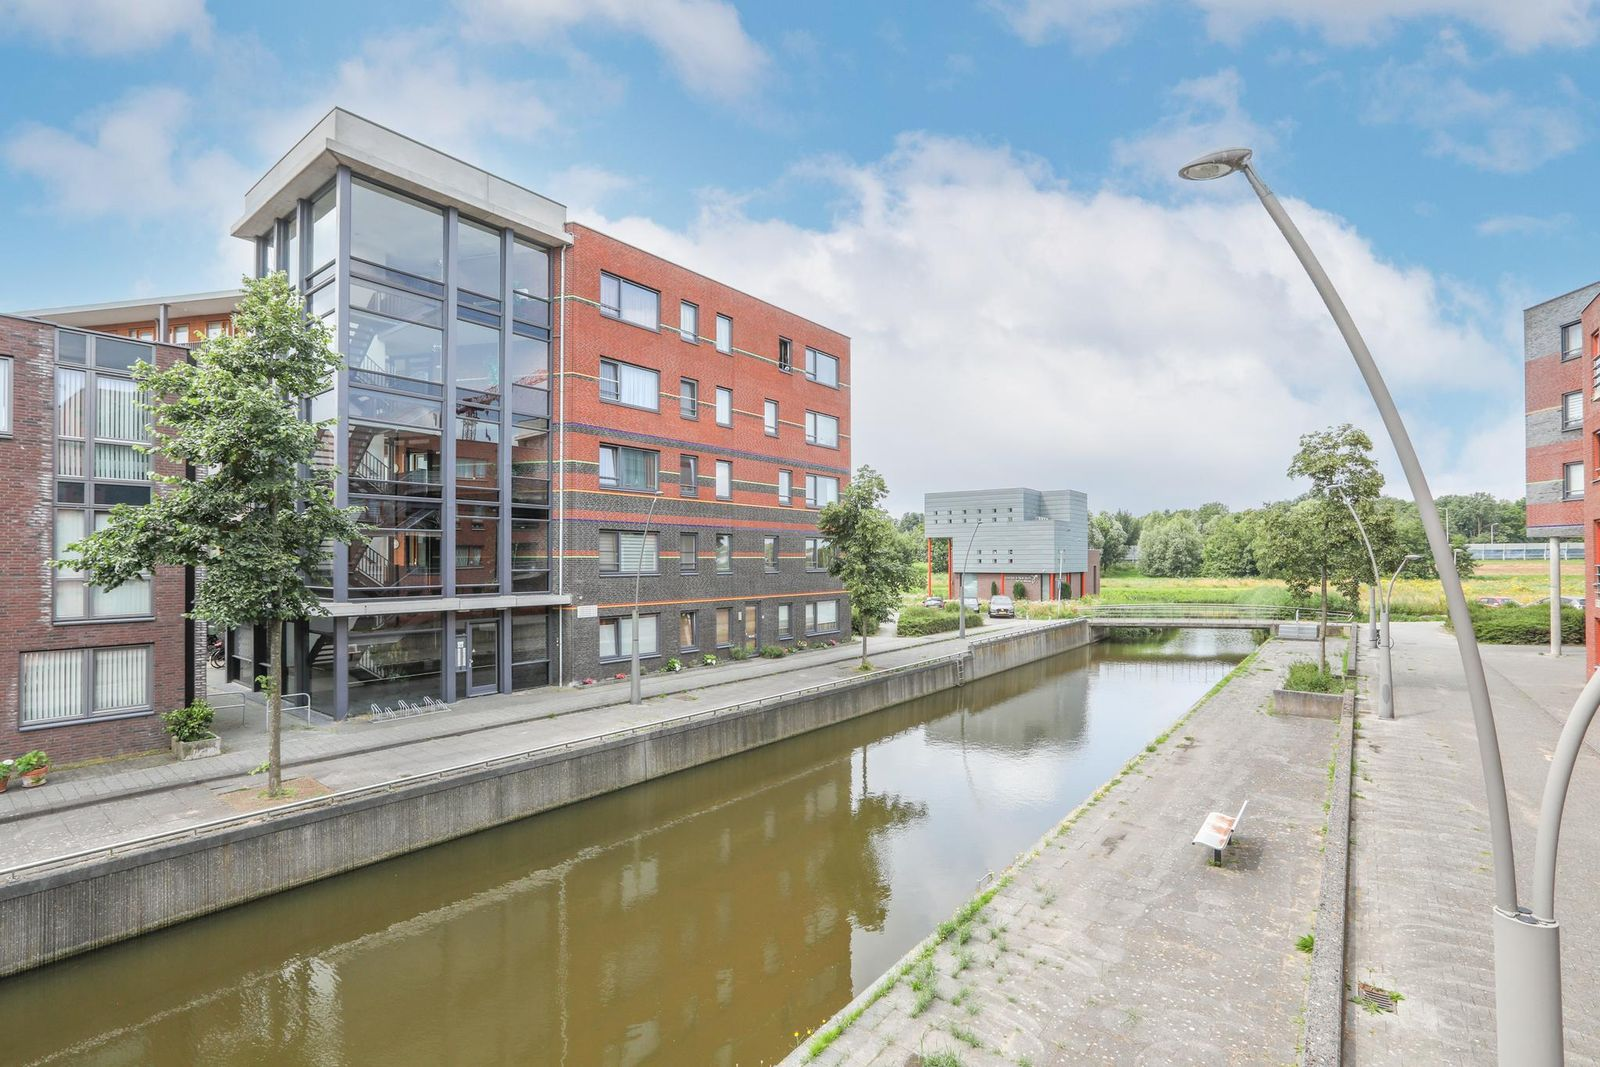 Oslohaven 12, Purmerend